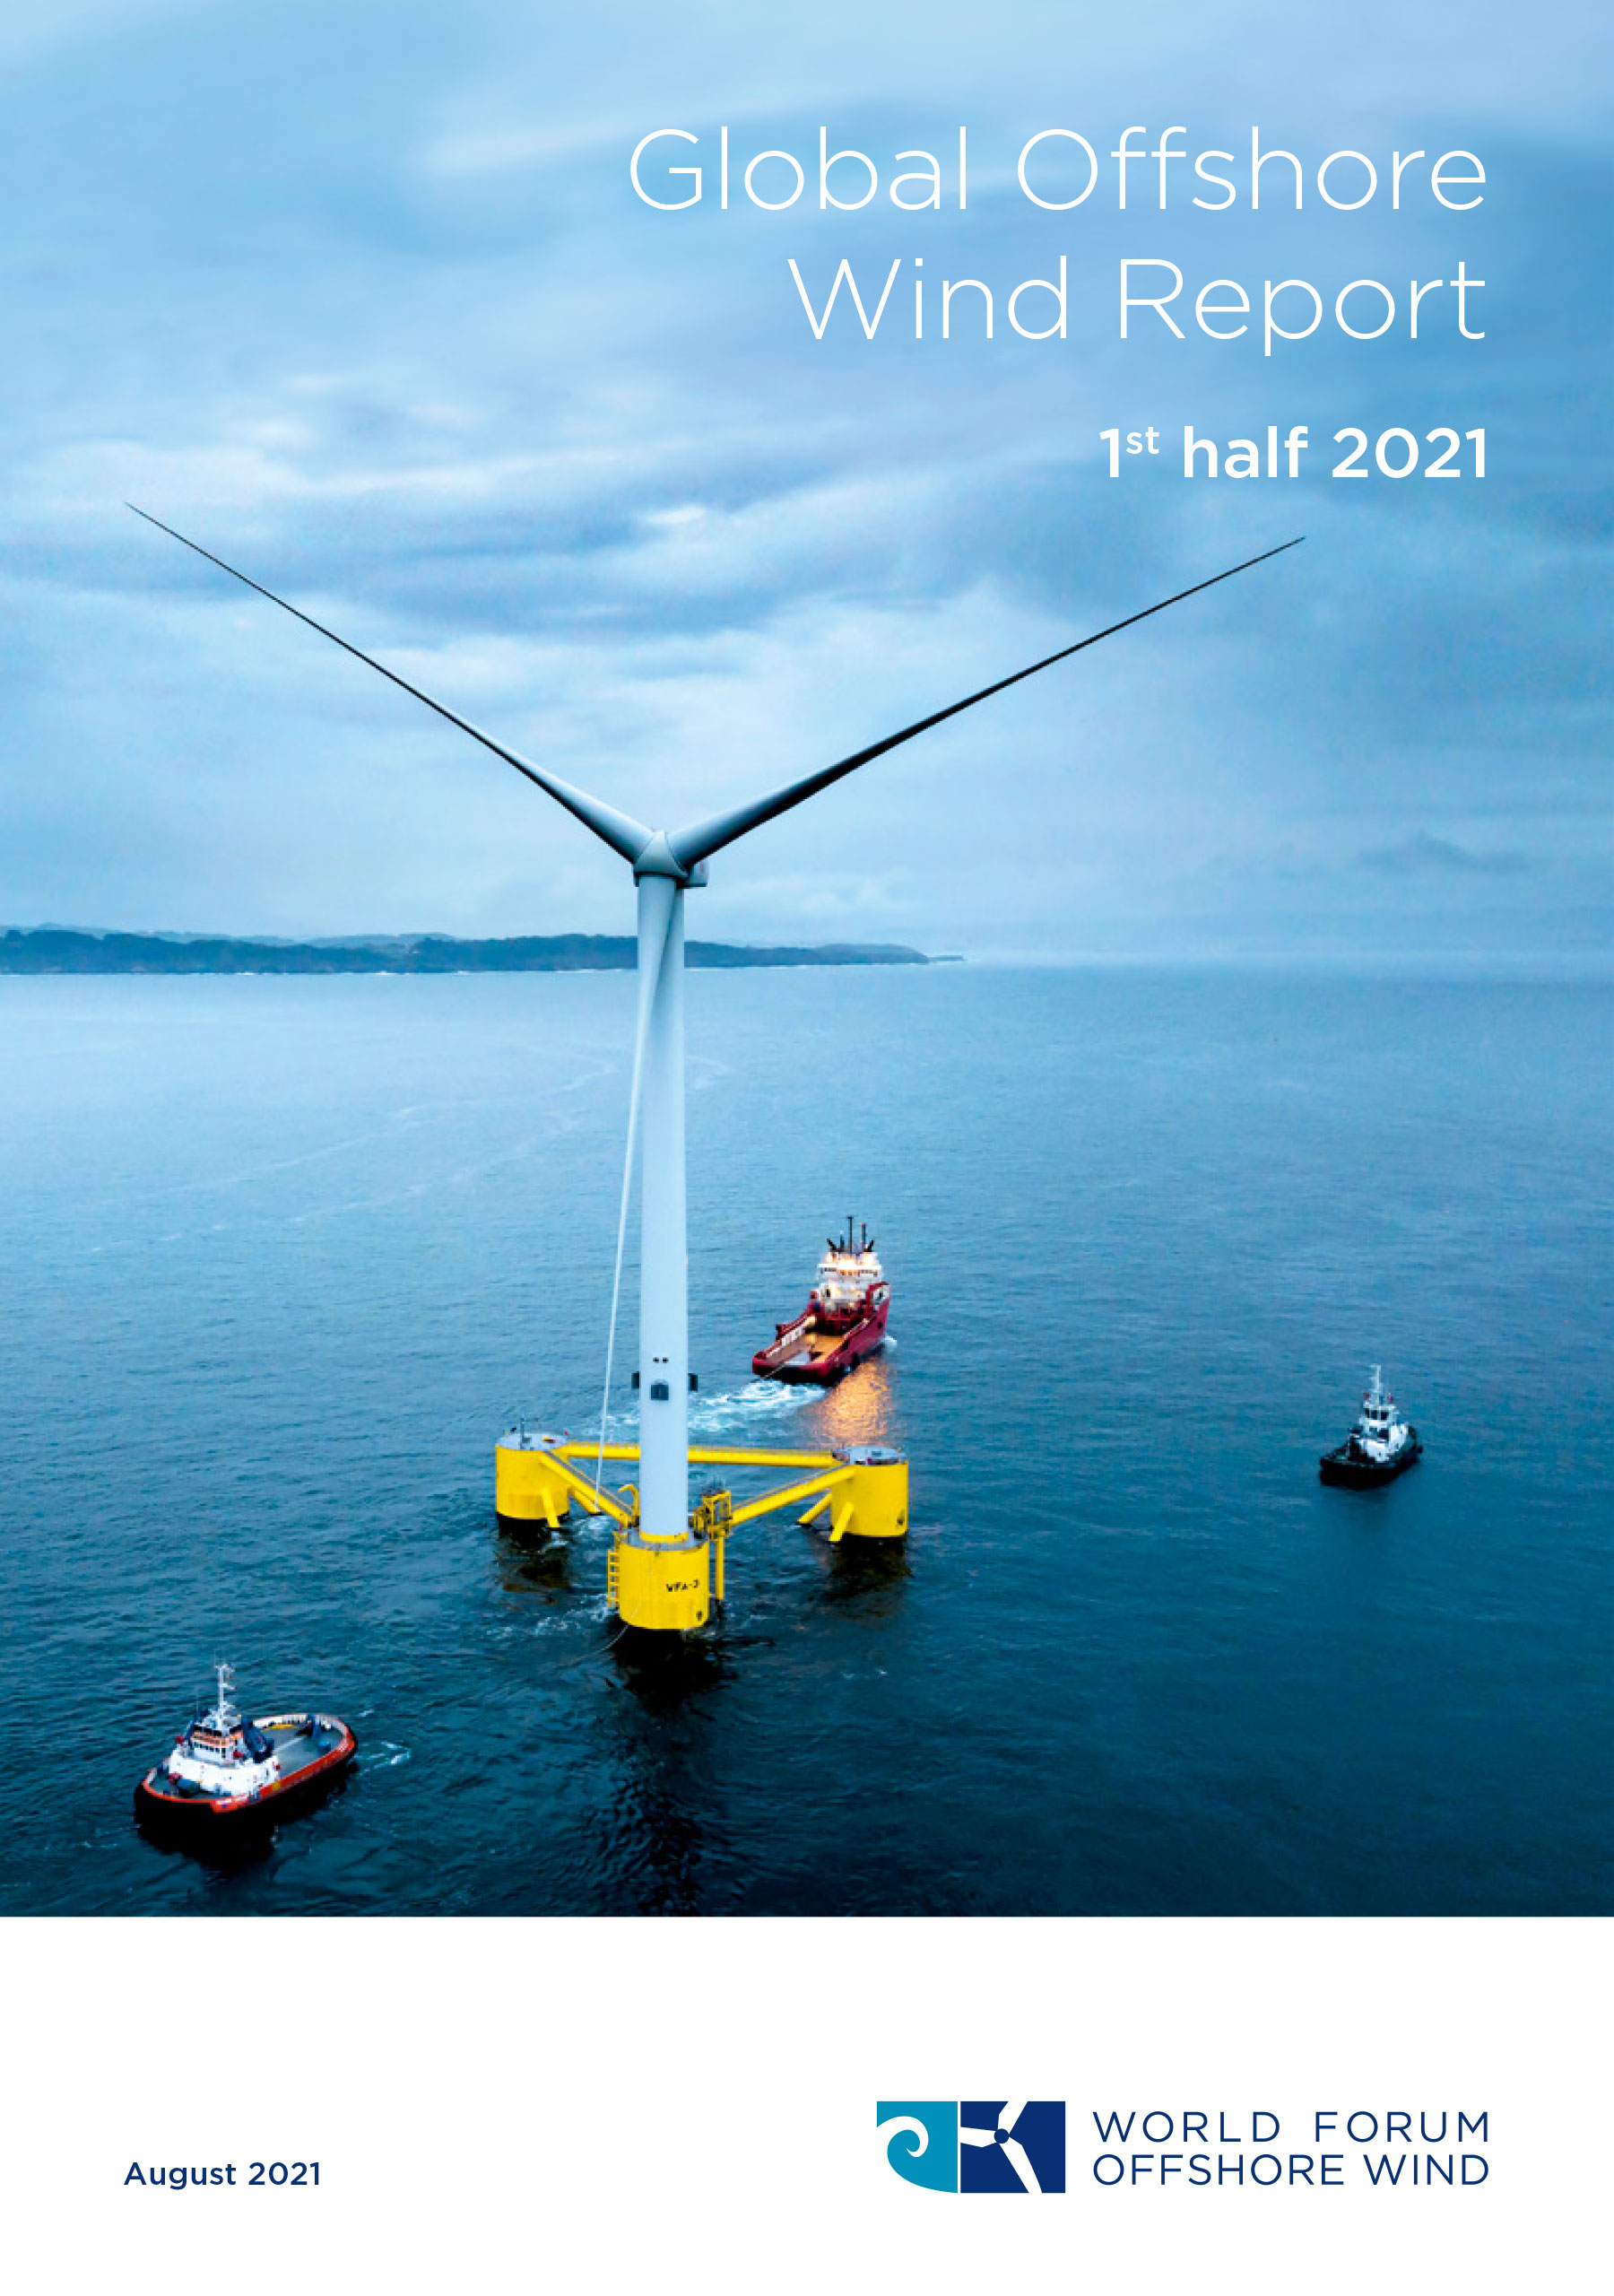 WFO Global Offshore Wind Report HY1 2021